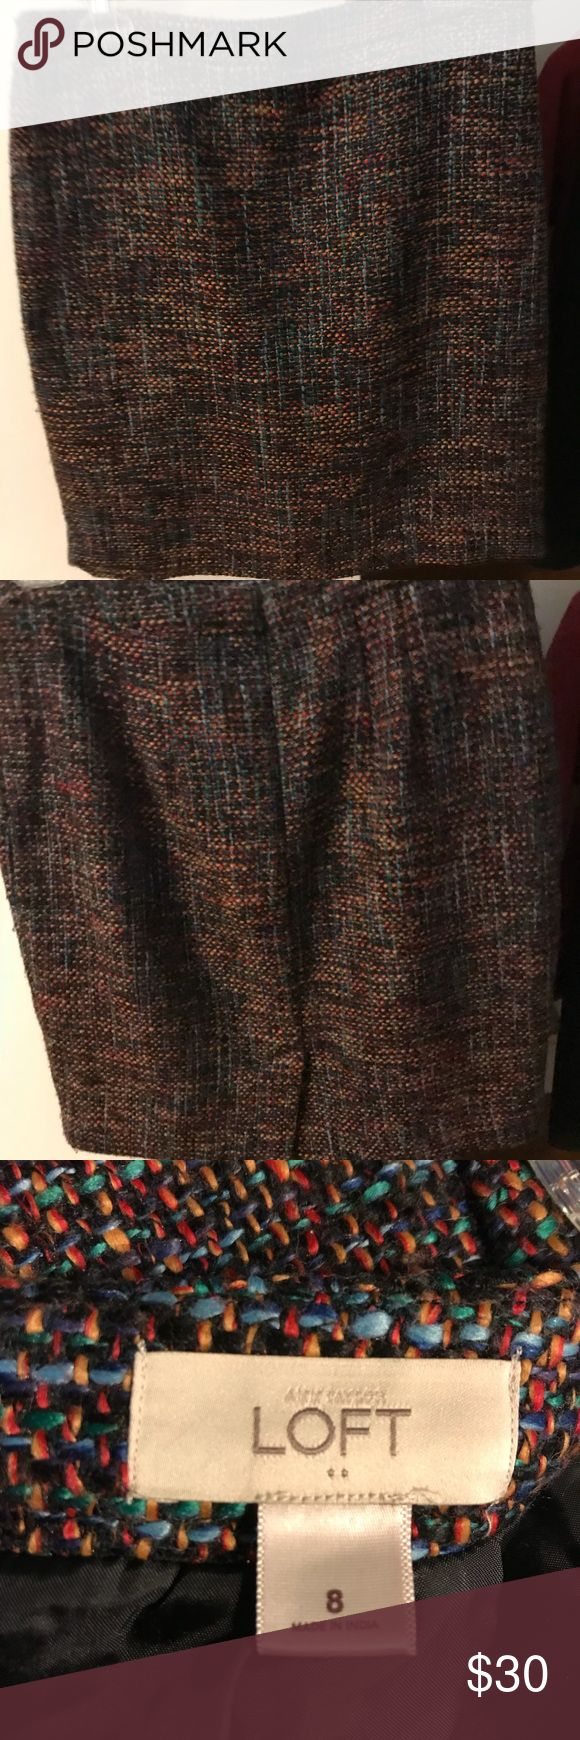 "Ann Taylor Loft skirt Multi colored skirt. Slim fit. Only worn a couple times. 20"" length LOFT Skirts"